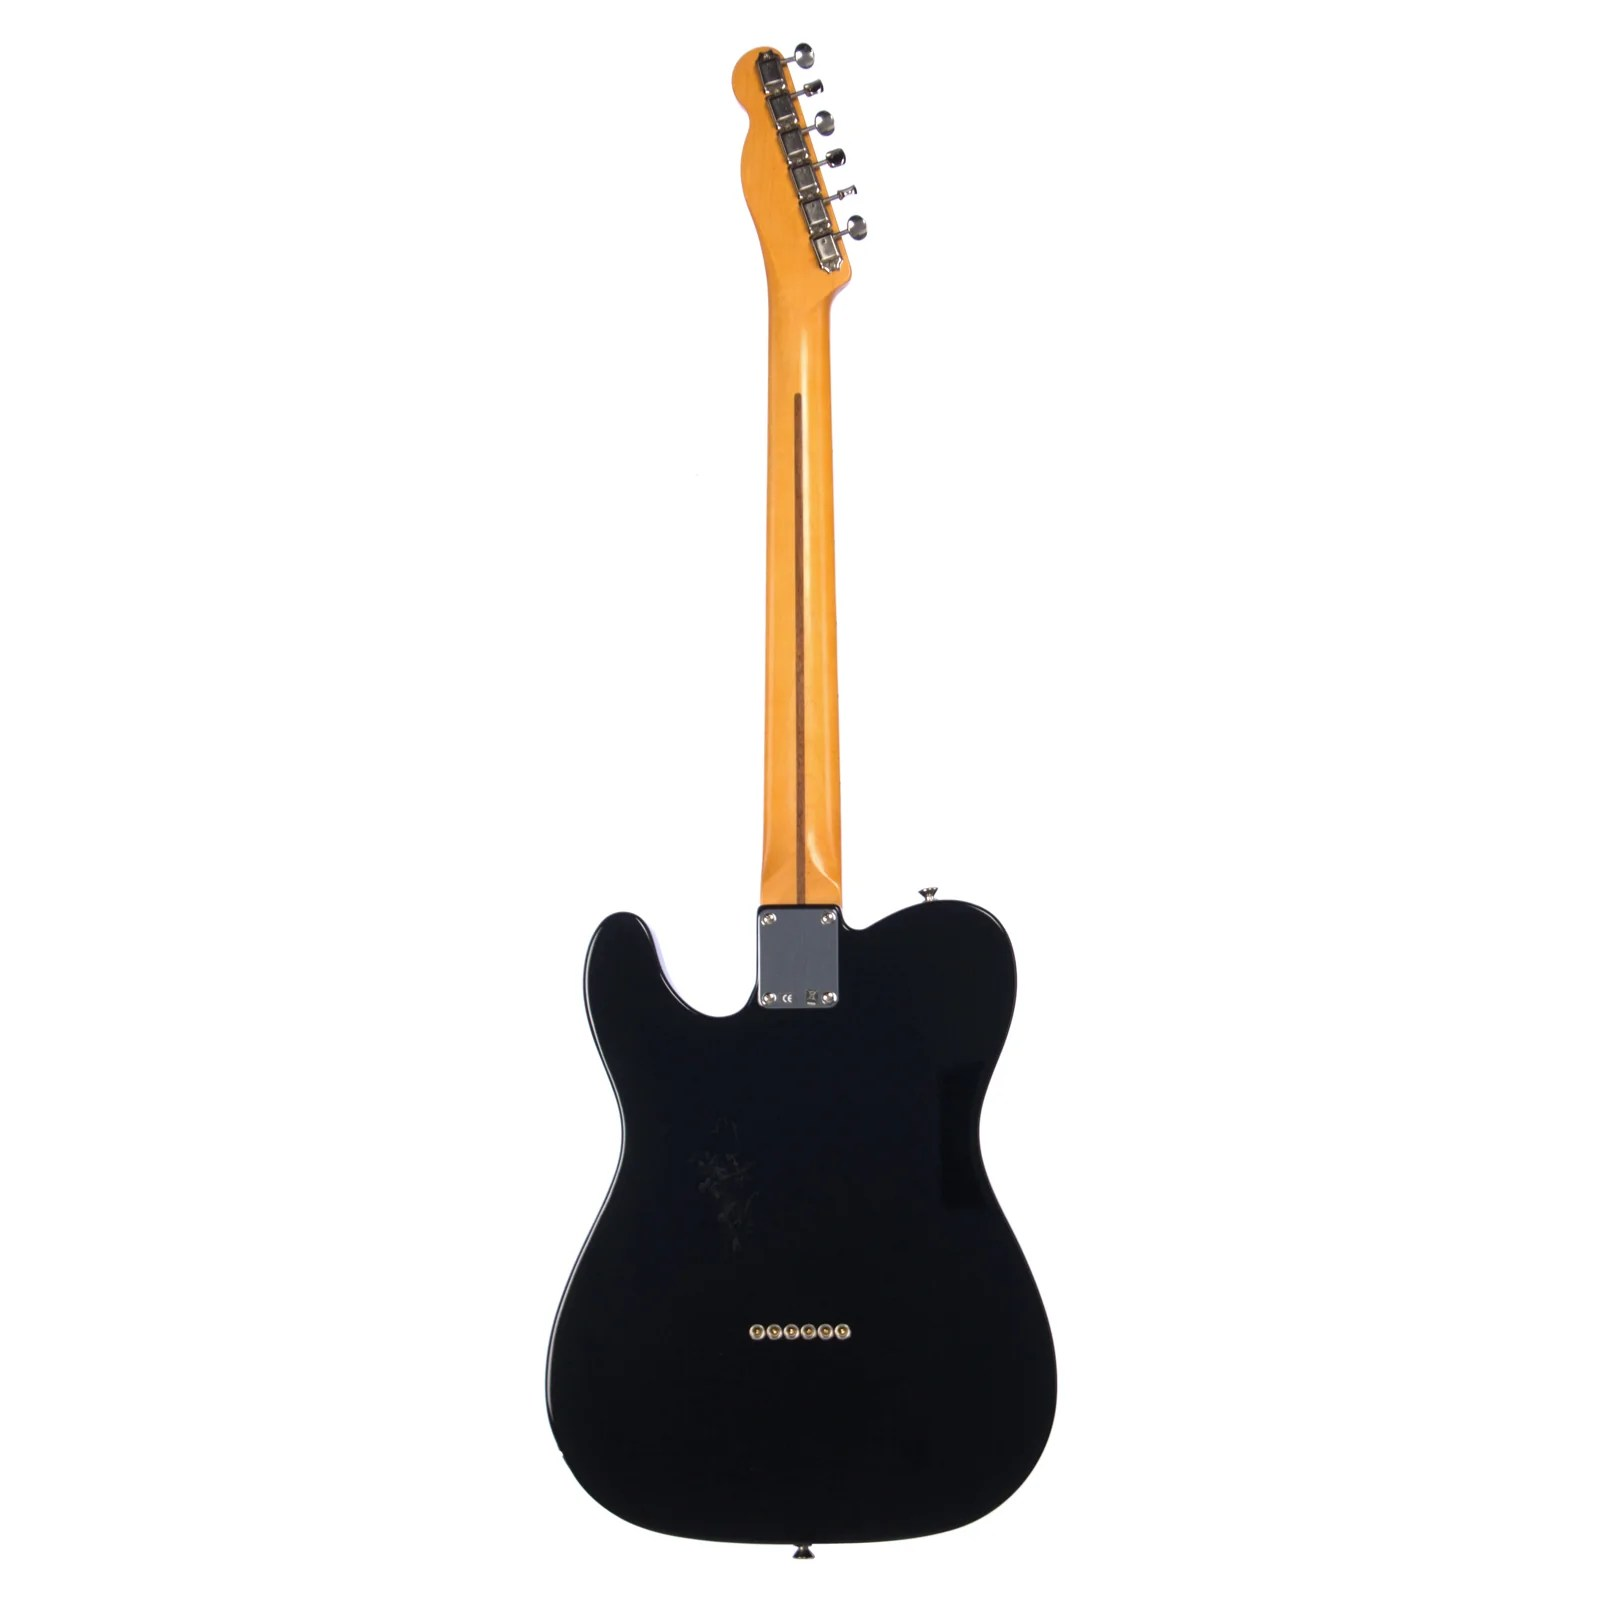 hight resolution of used fender vintage hot rod 52 telecaster black electric guitar made in